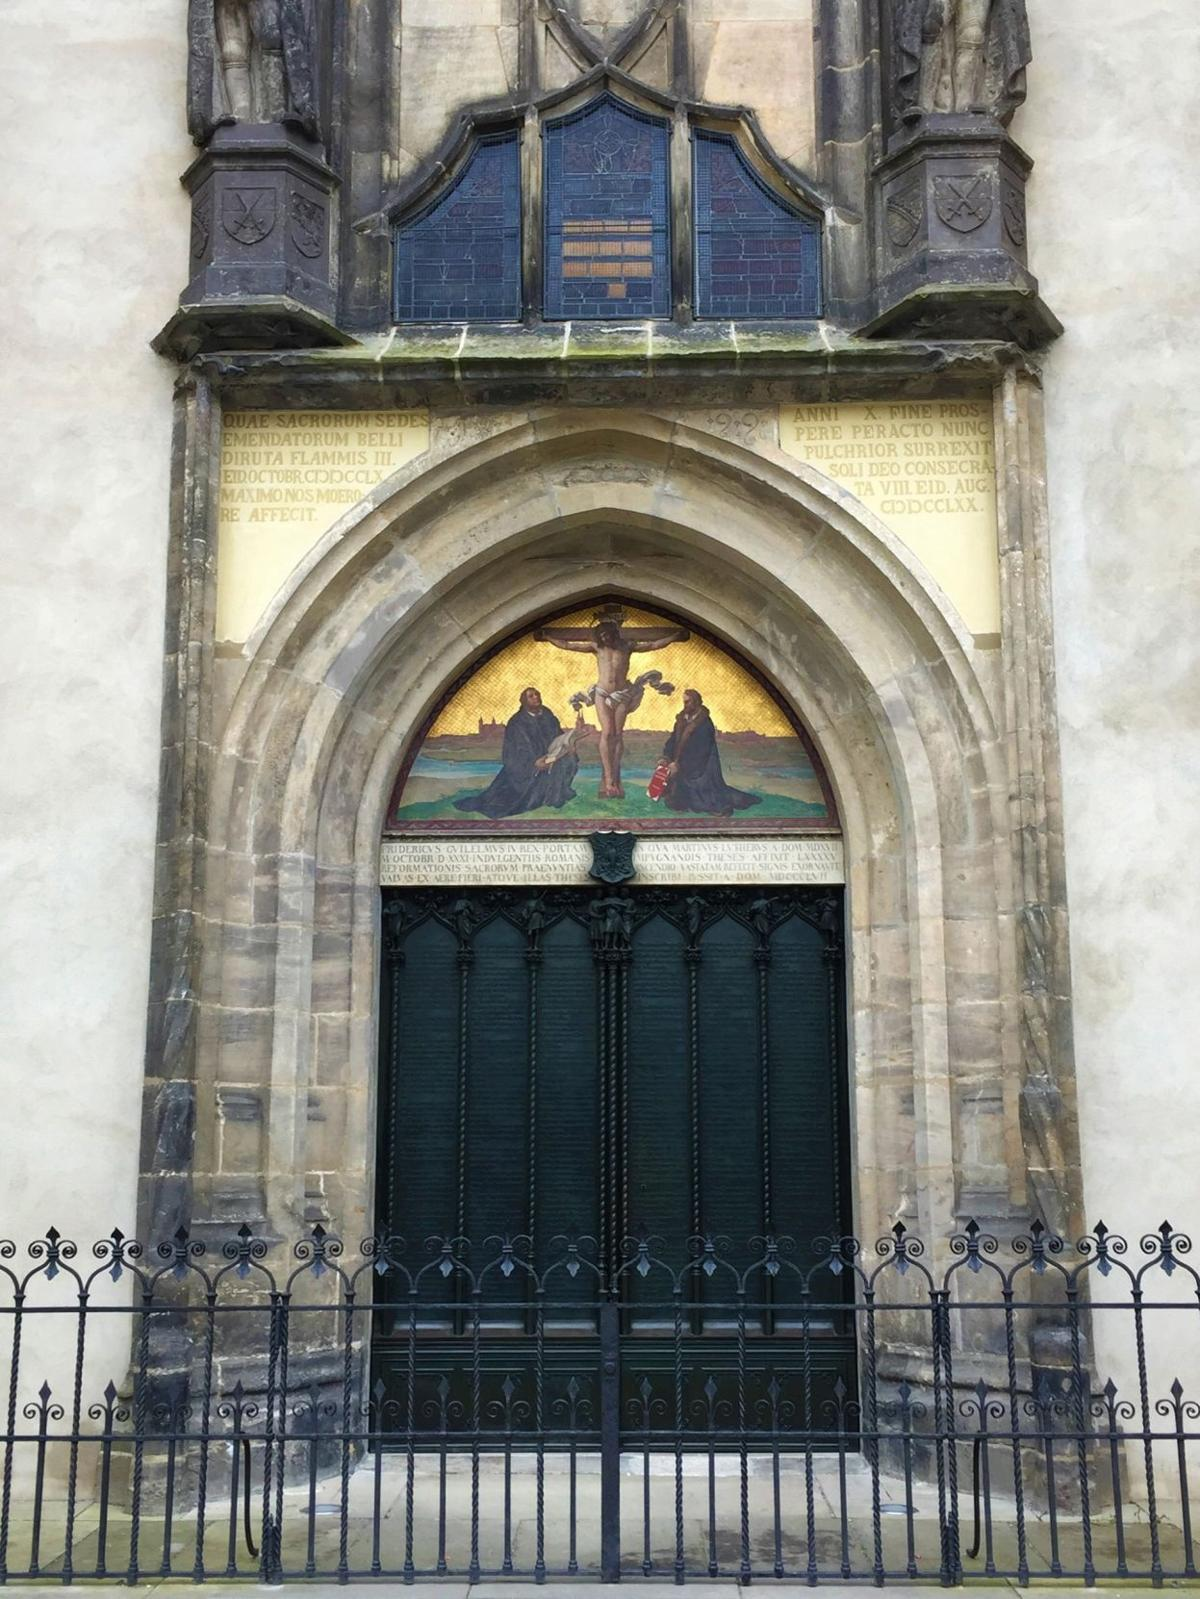 The doors of Castle Church in Wittenberg